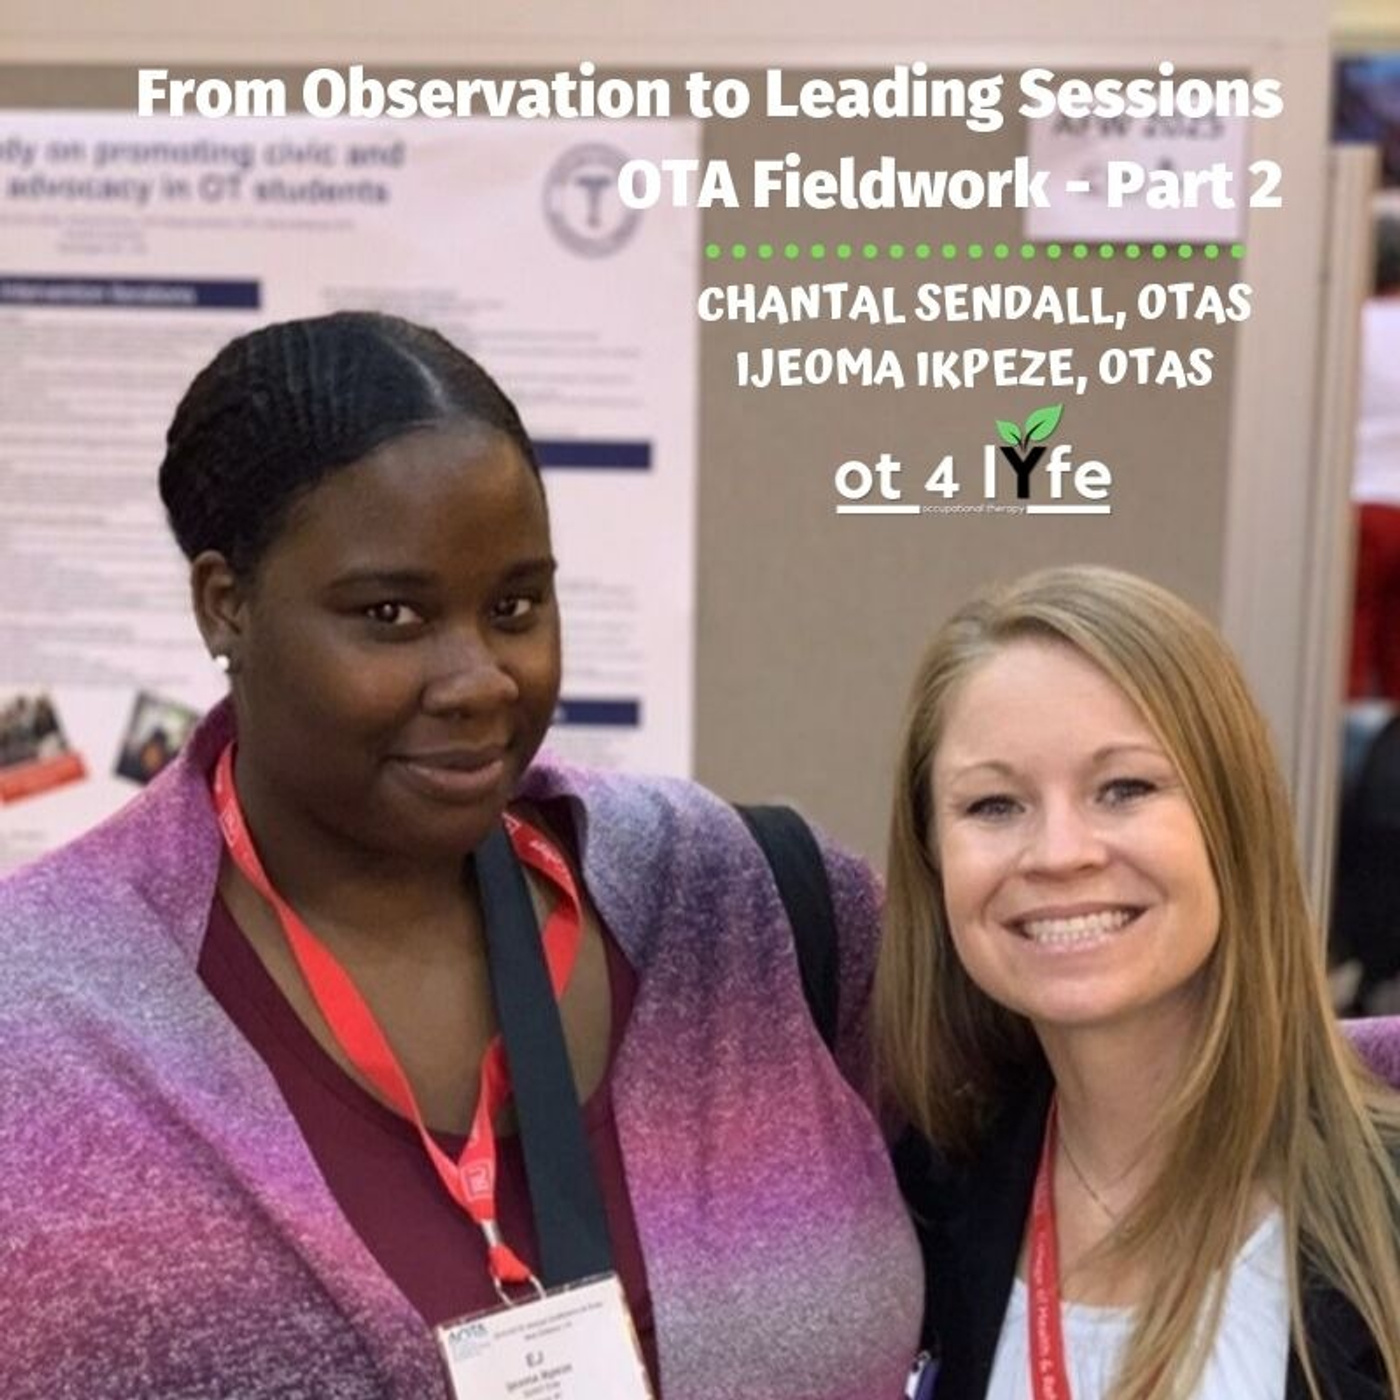 From Observation to Taking the Lead - OTA Fieldwork: Part 2 of 4